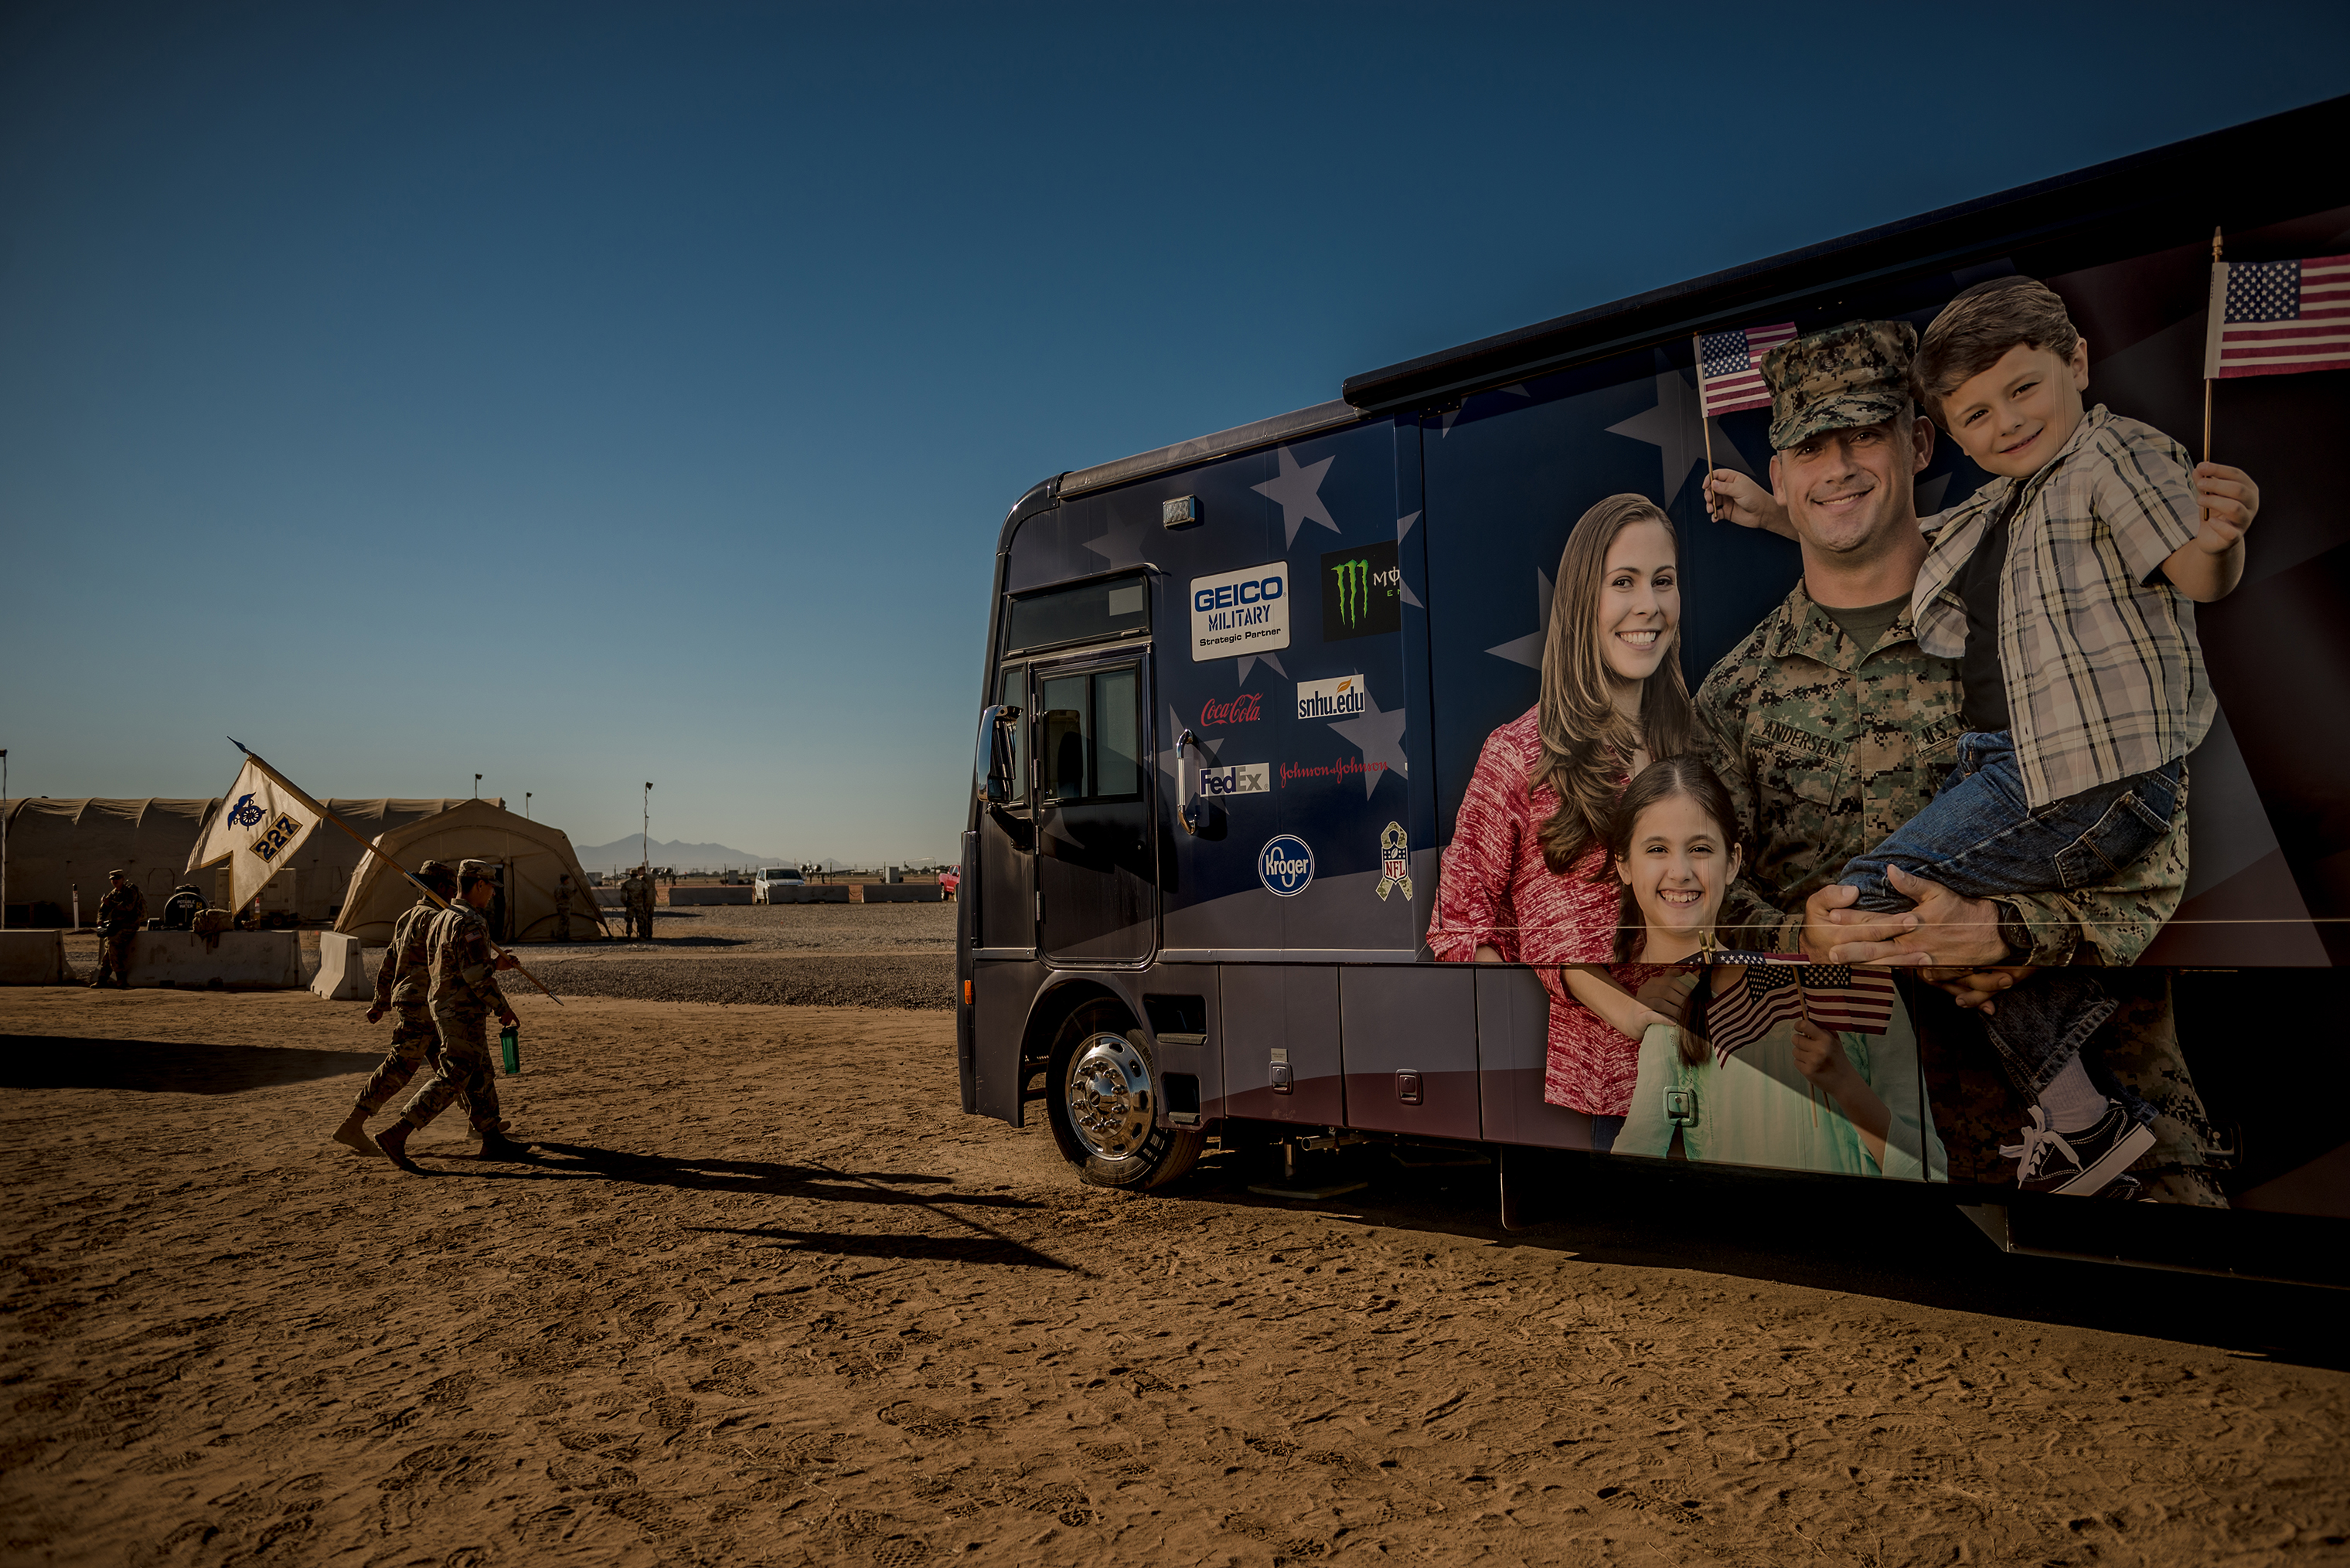 A USO RV, where soldiers can hang out, watch movies and charge cell phones, at Sunglow City.